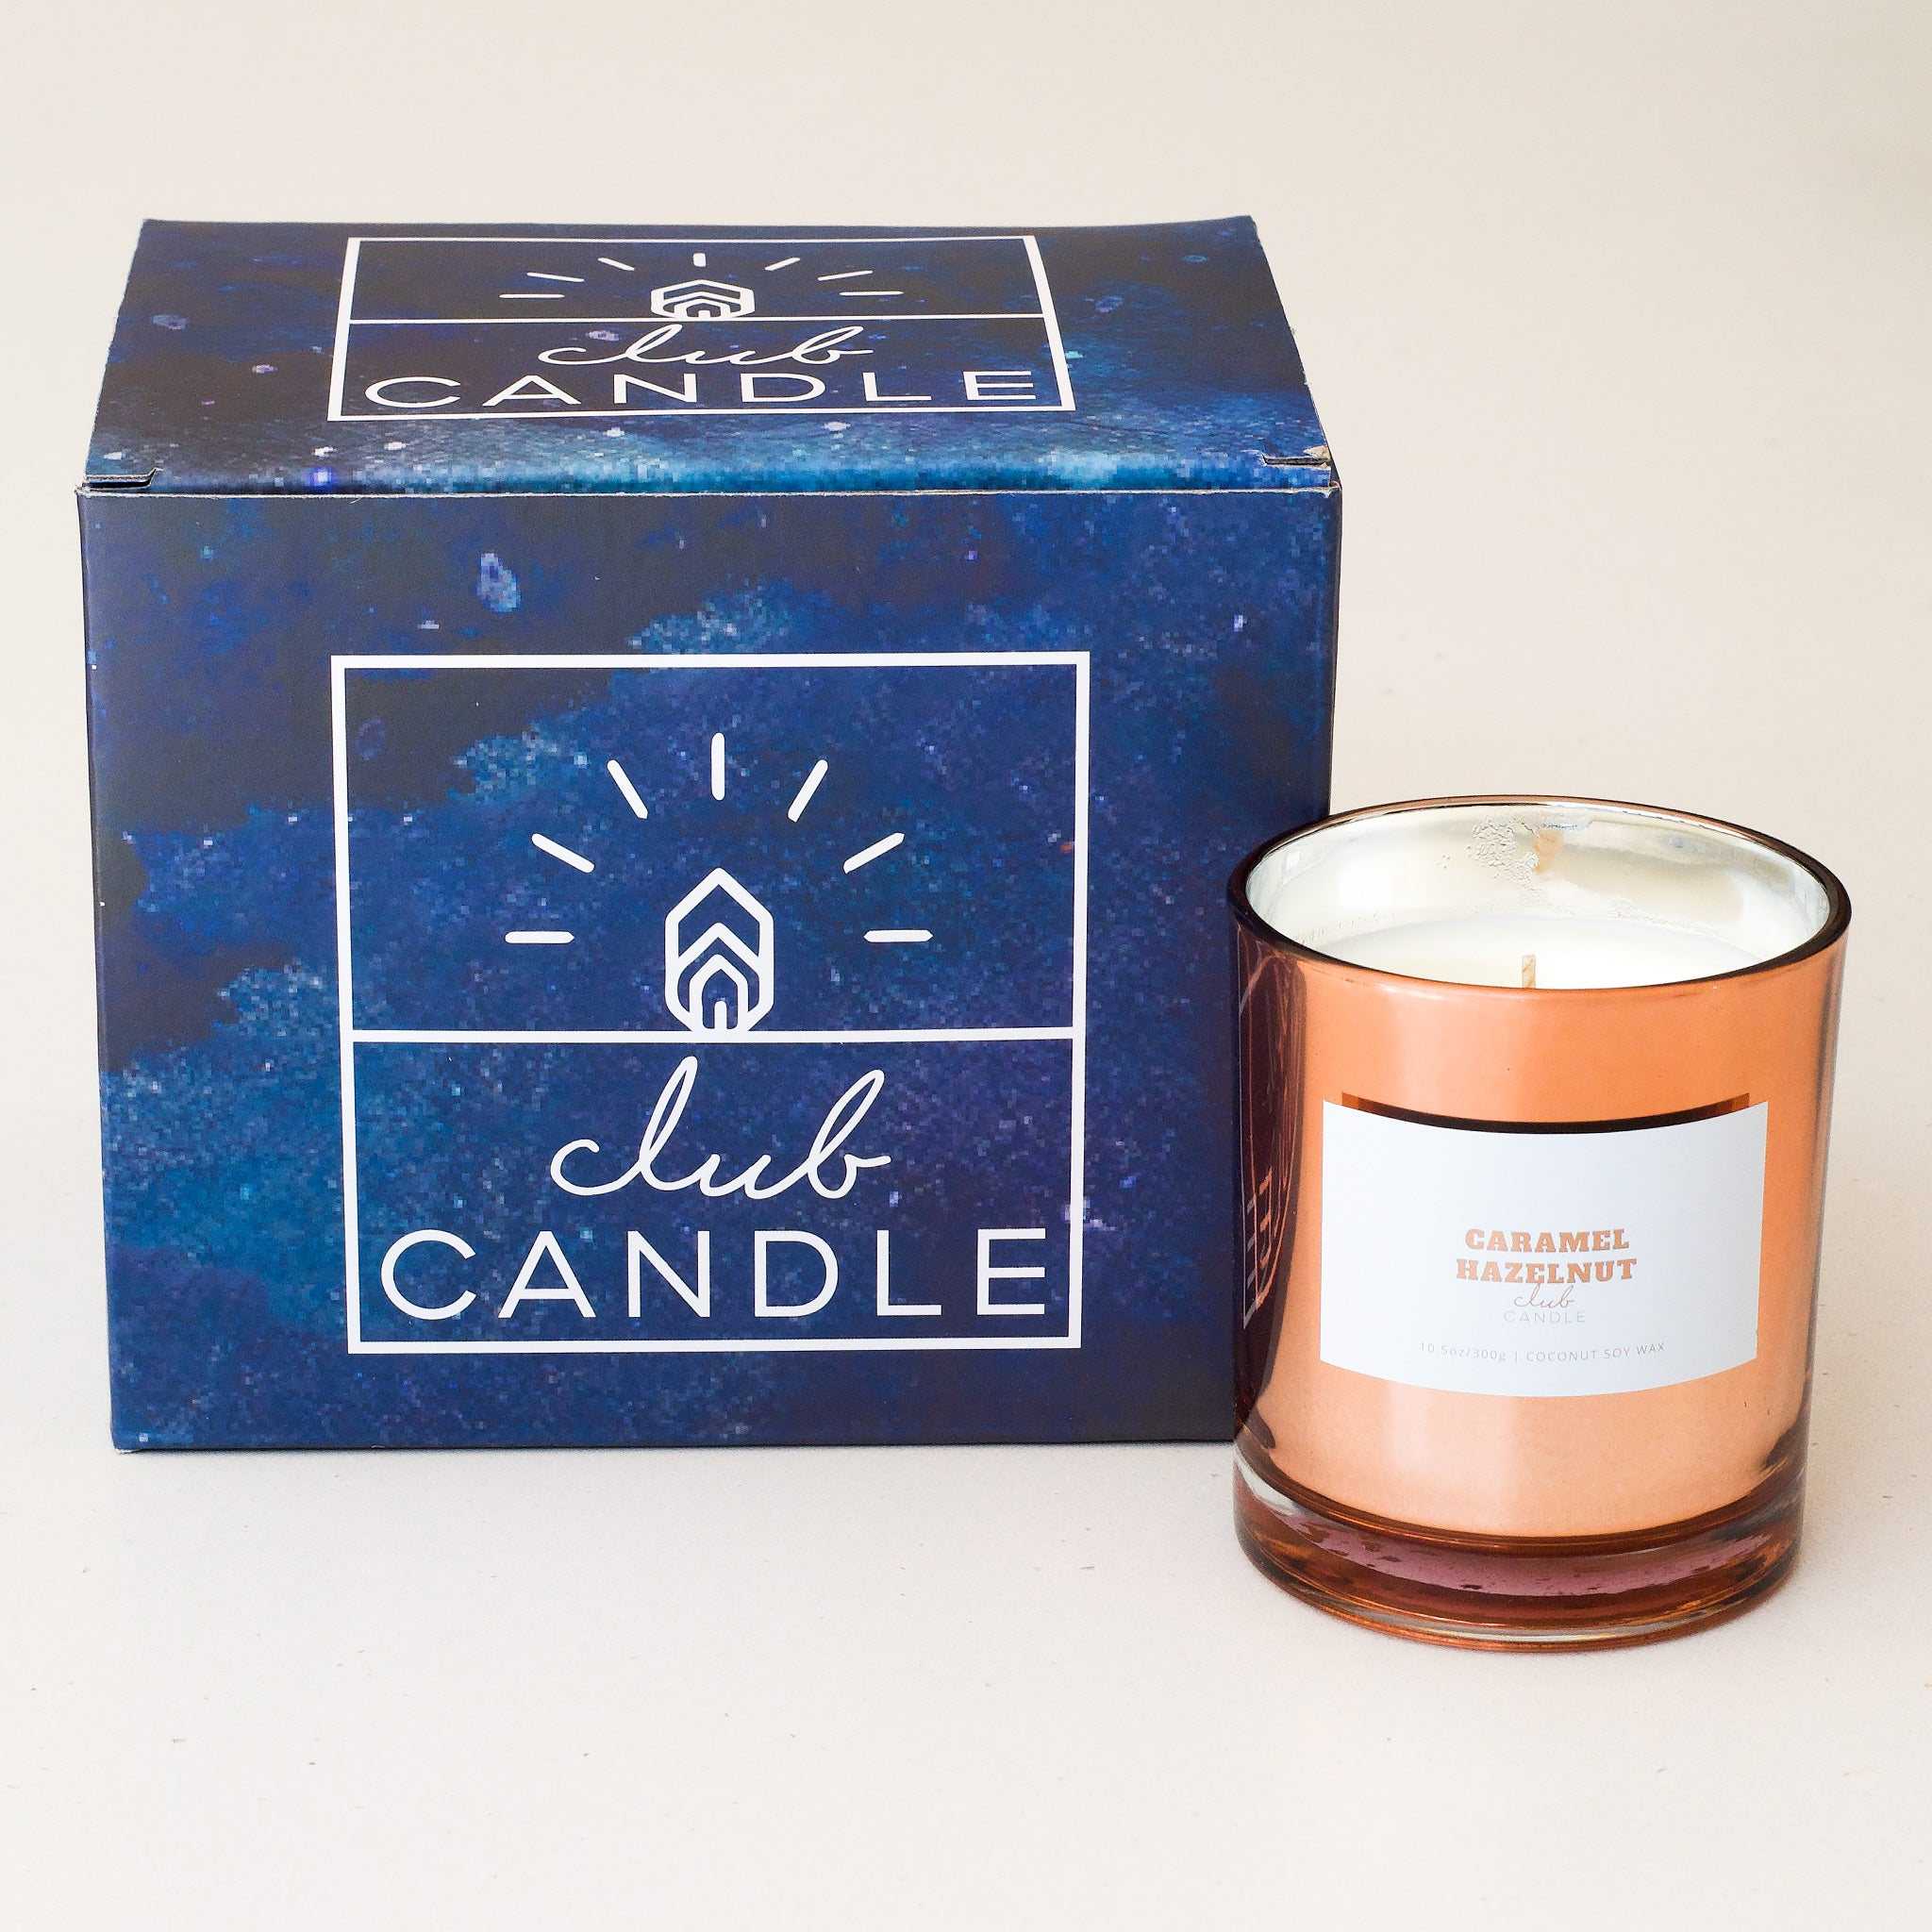 Candle of the month - Caramel Hazelnut